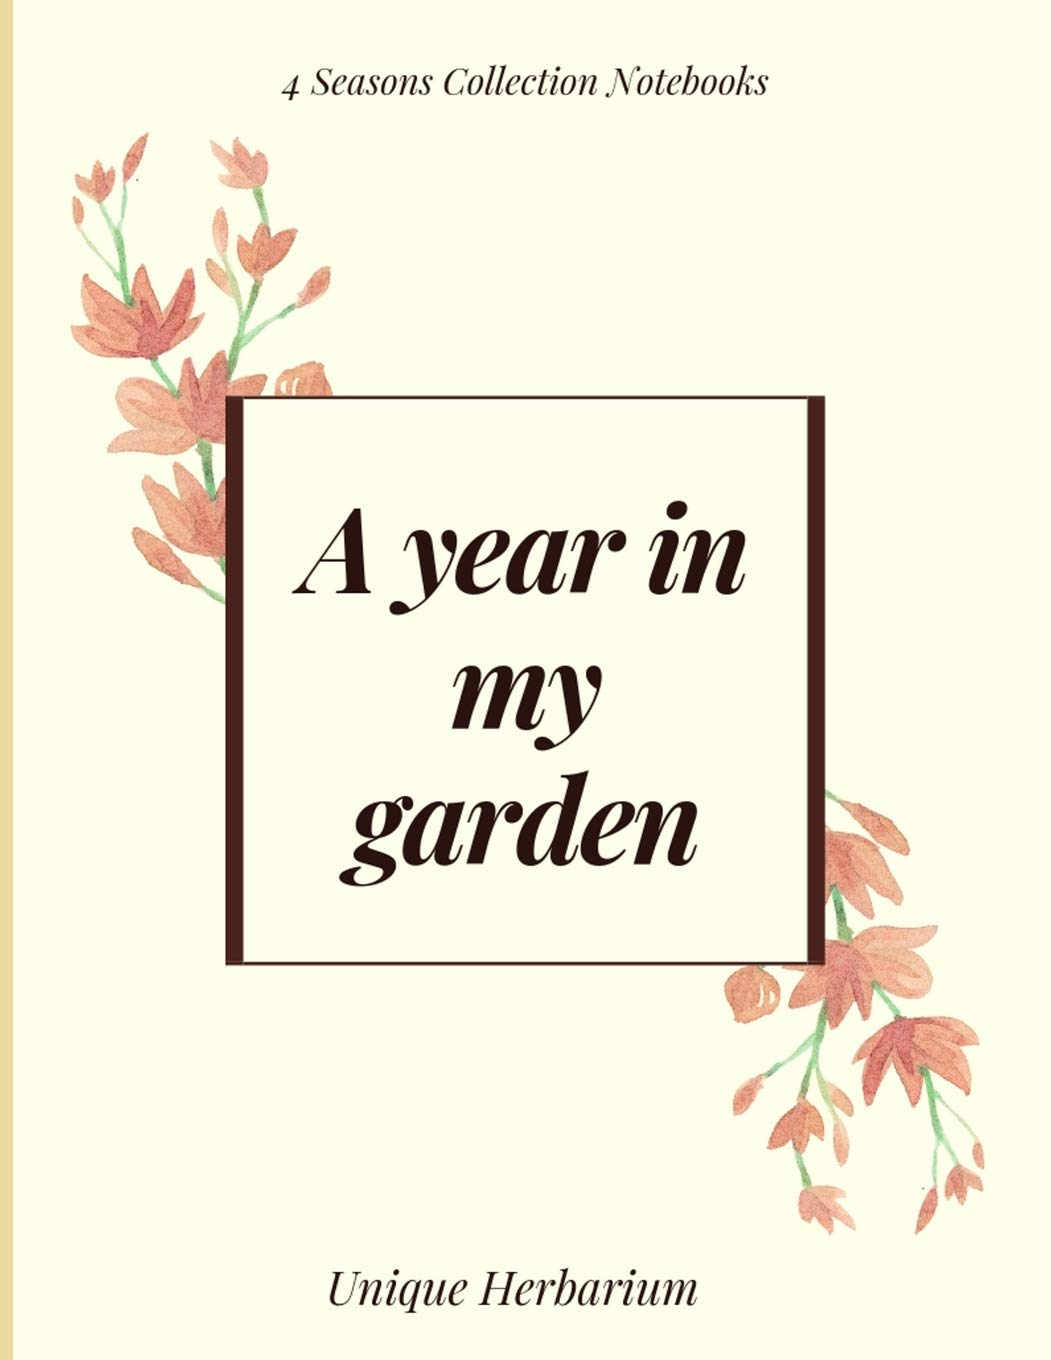 Buy A Year In My Garden Unique Herbarium A Perfect Notebook For